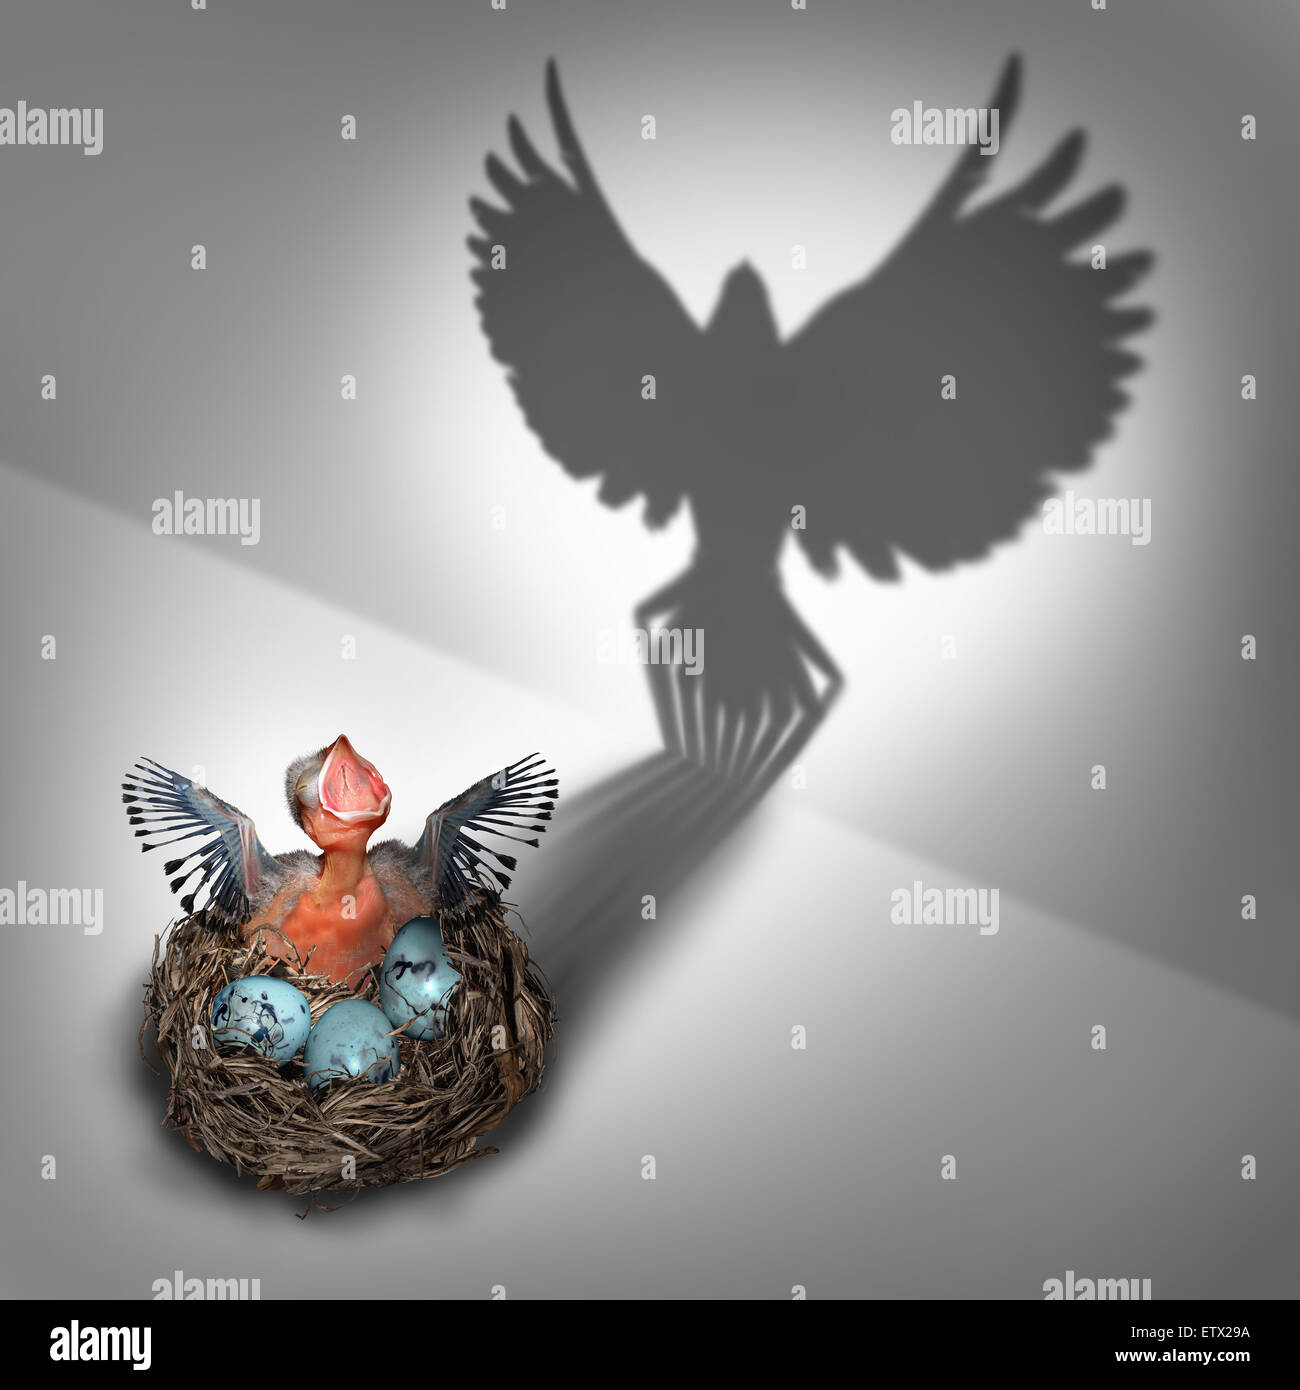 Future potential or genesis concept as a hatchling baby bird in a nest coming out with a cast shadow of a feathered - Stock Image